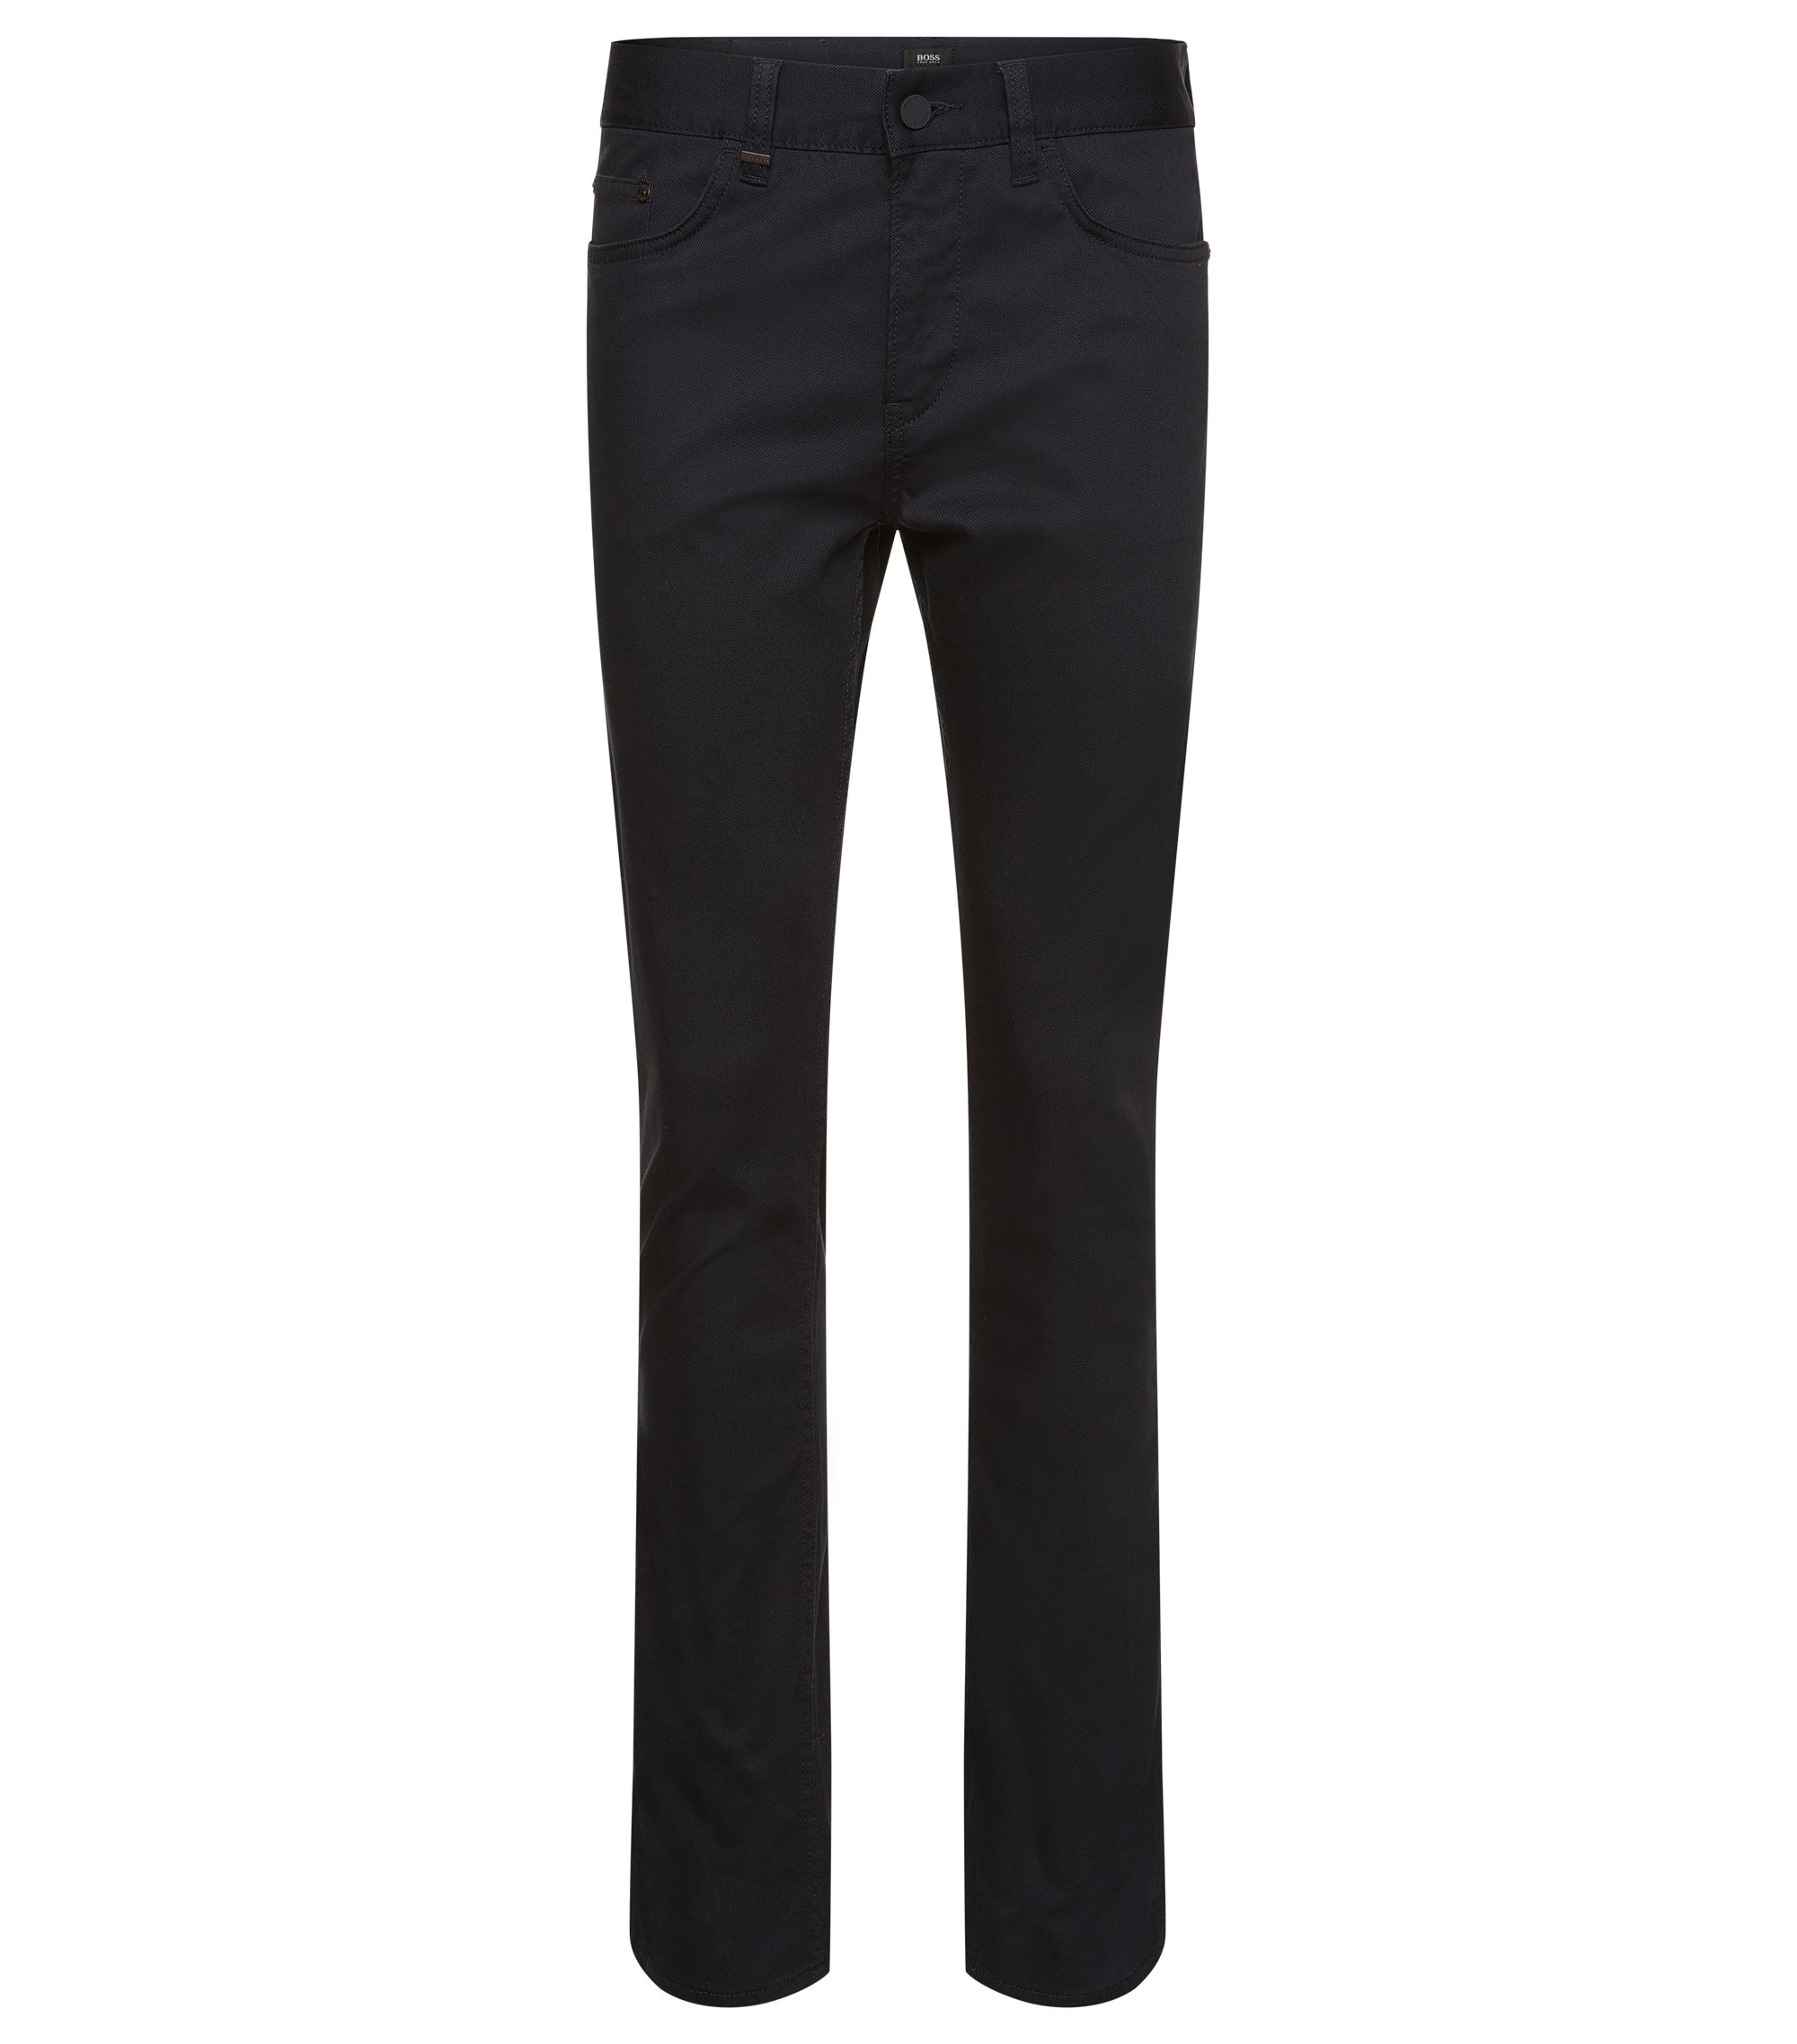 11 oz Stretch Cotton Trouser, Slim Fit | Delaware, Dark Blue